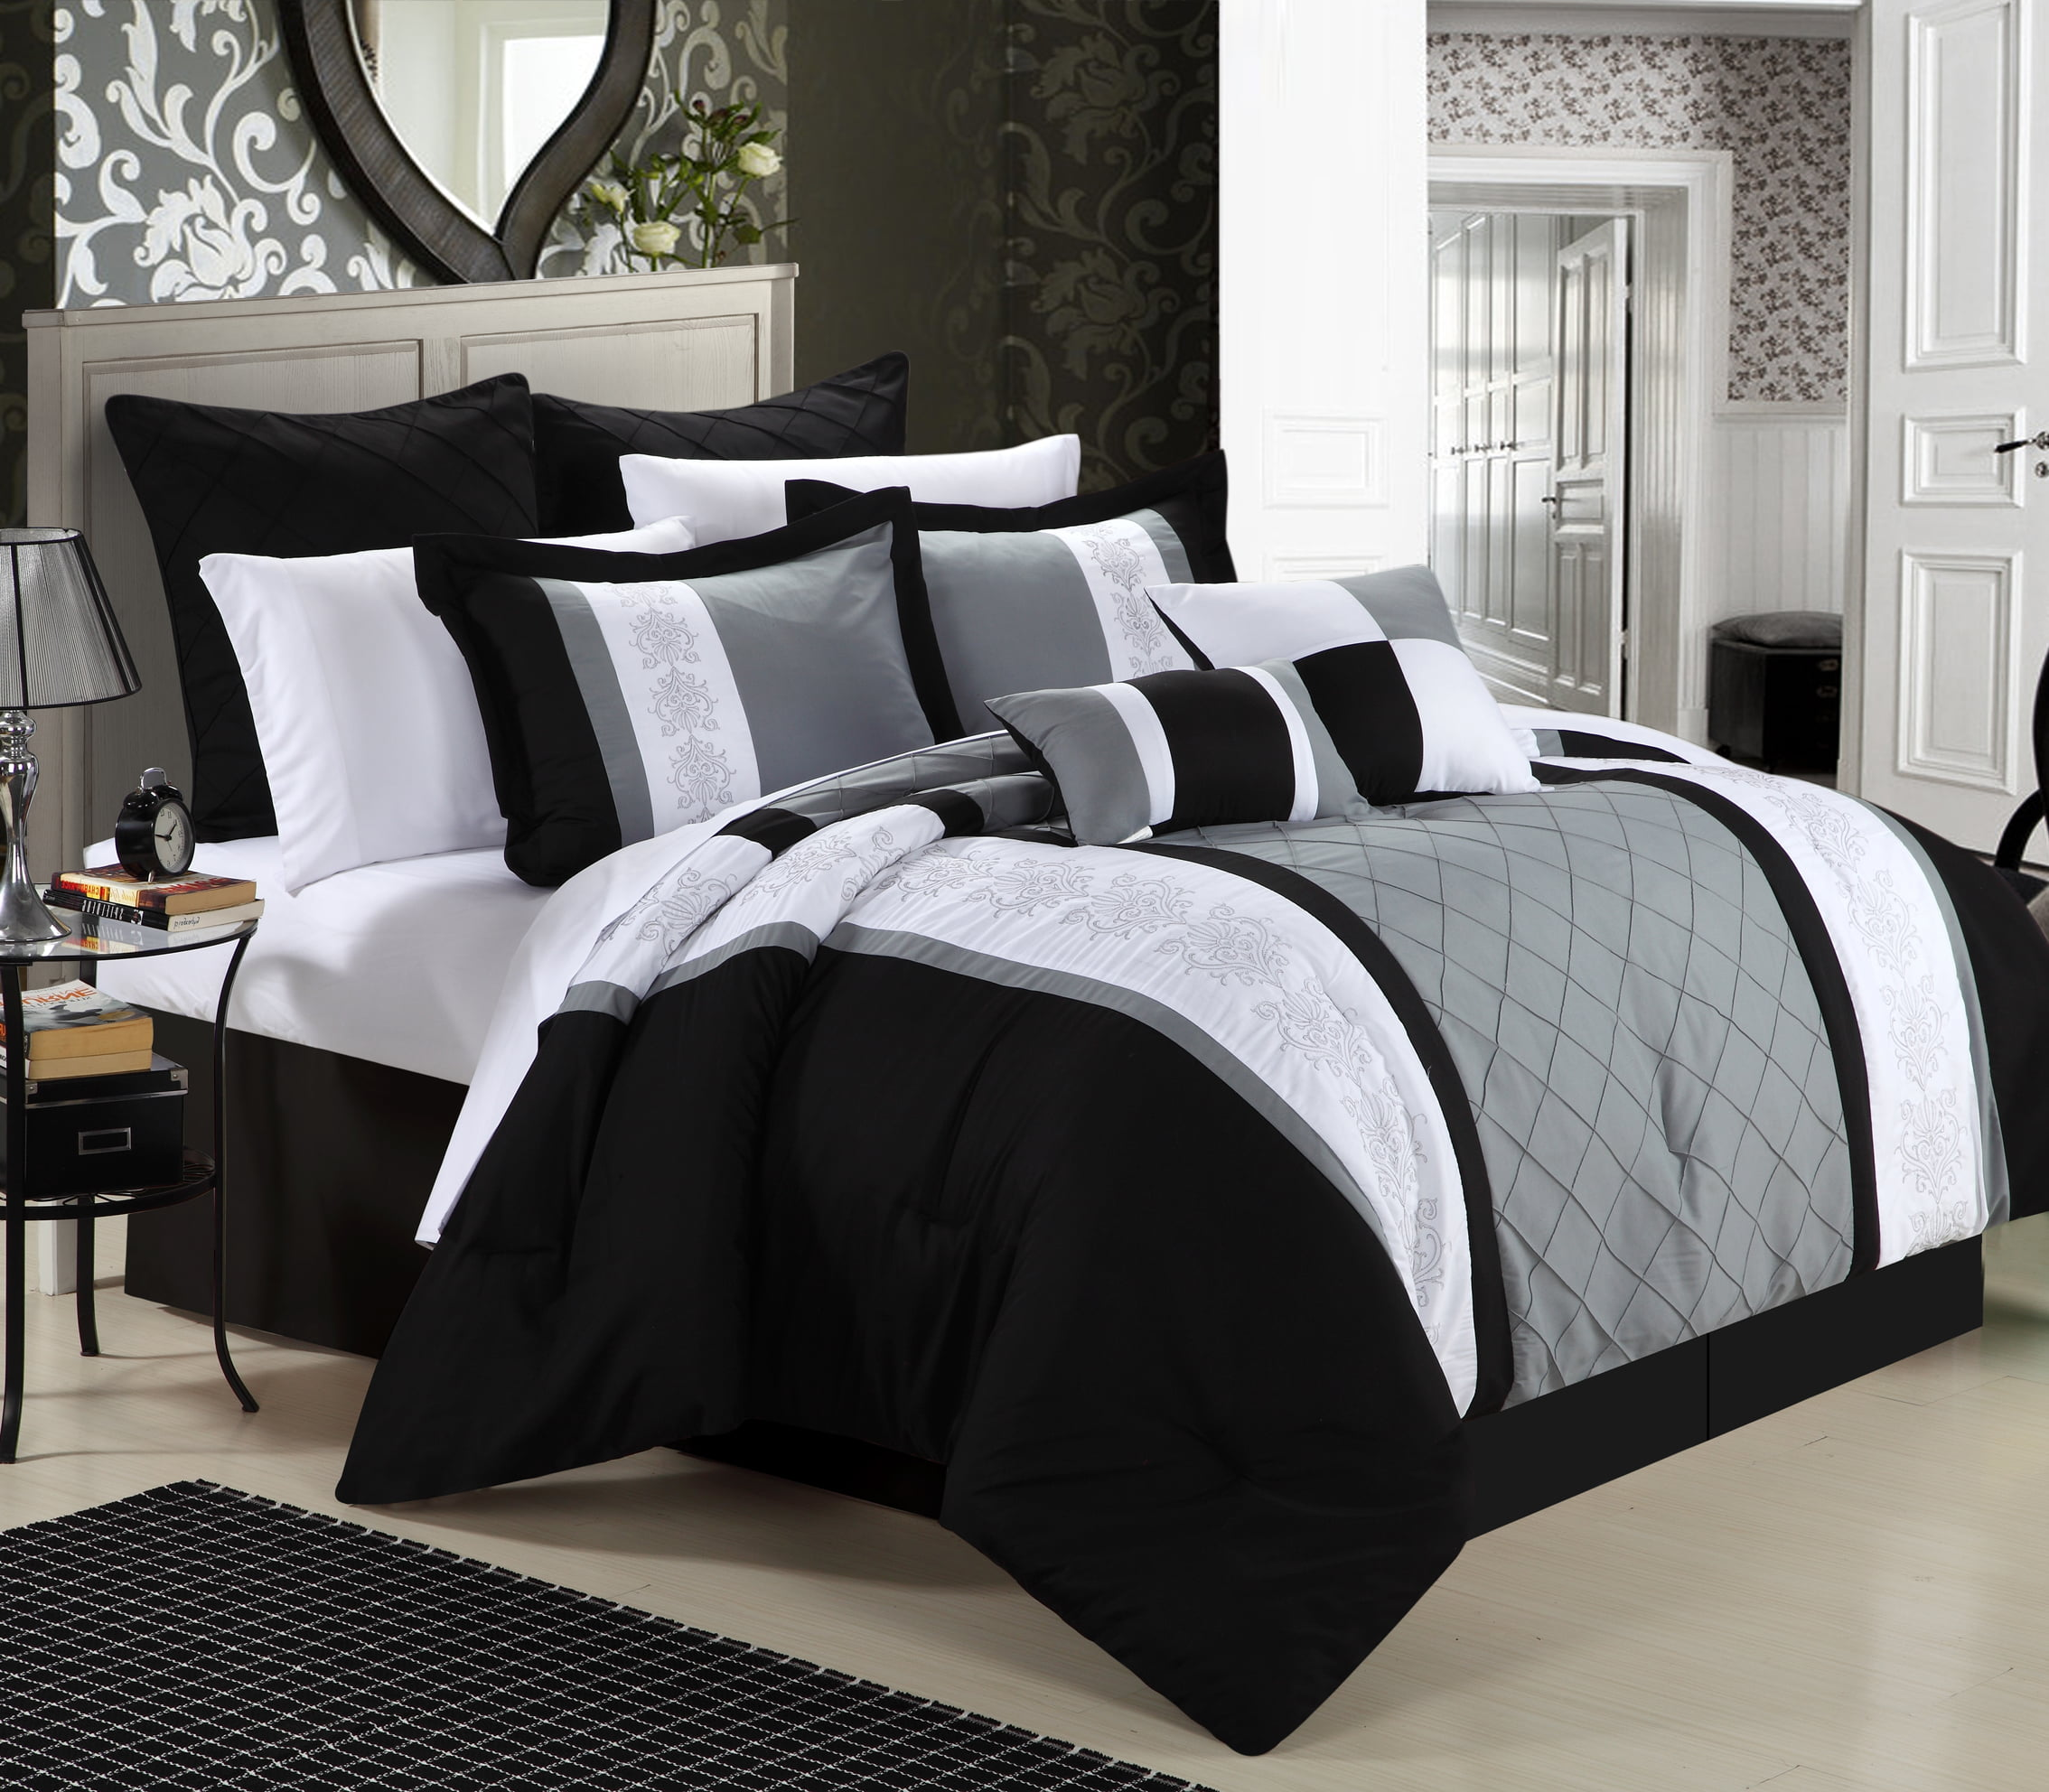 oversized pics bed set best marvelous pc xfile white queen design for comforter styles pict hotel king sets and blackwhitegrey size of black ideas